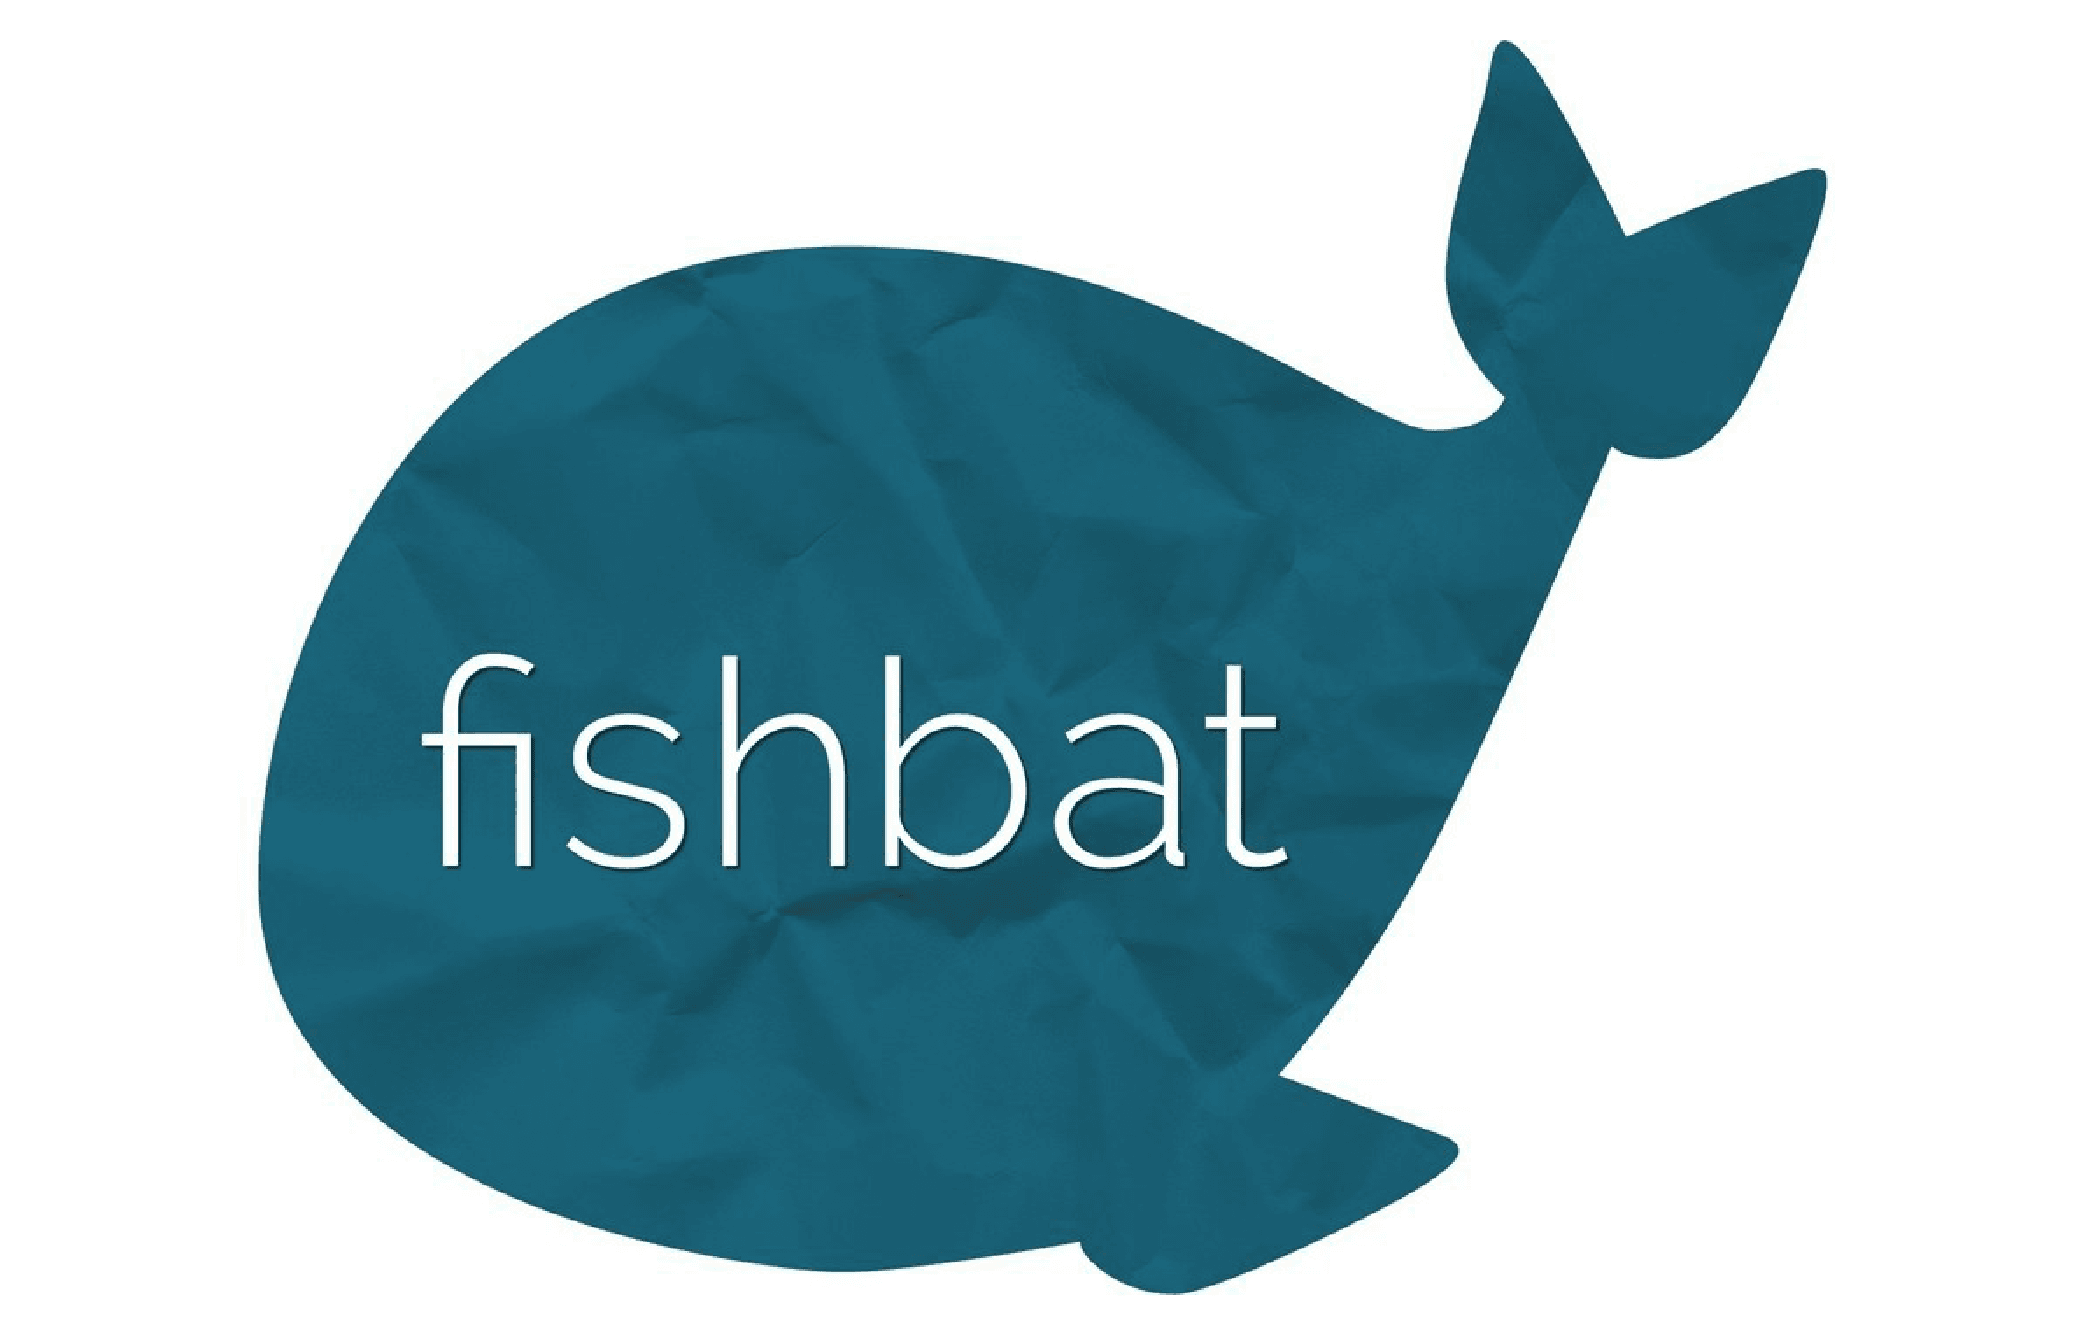 PointofSale Online Marketing Agency, fishbat, Reviews Four Instagram Best Practices and How to Implement Them into Your Strategy